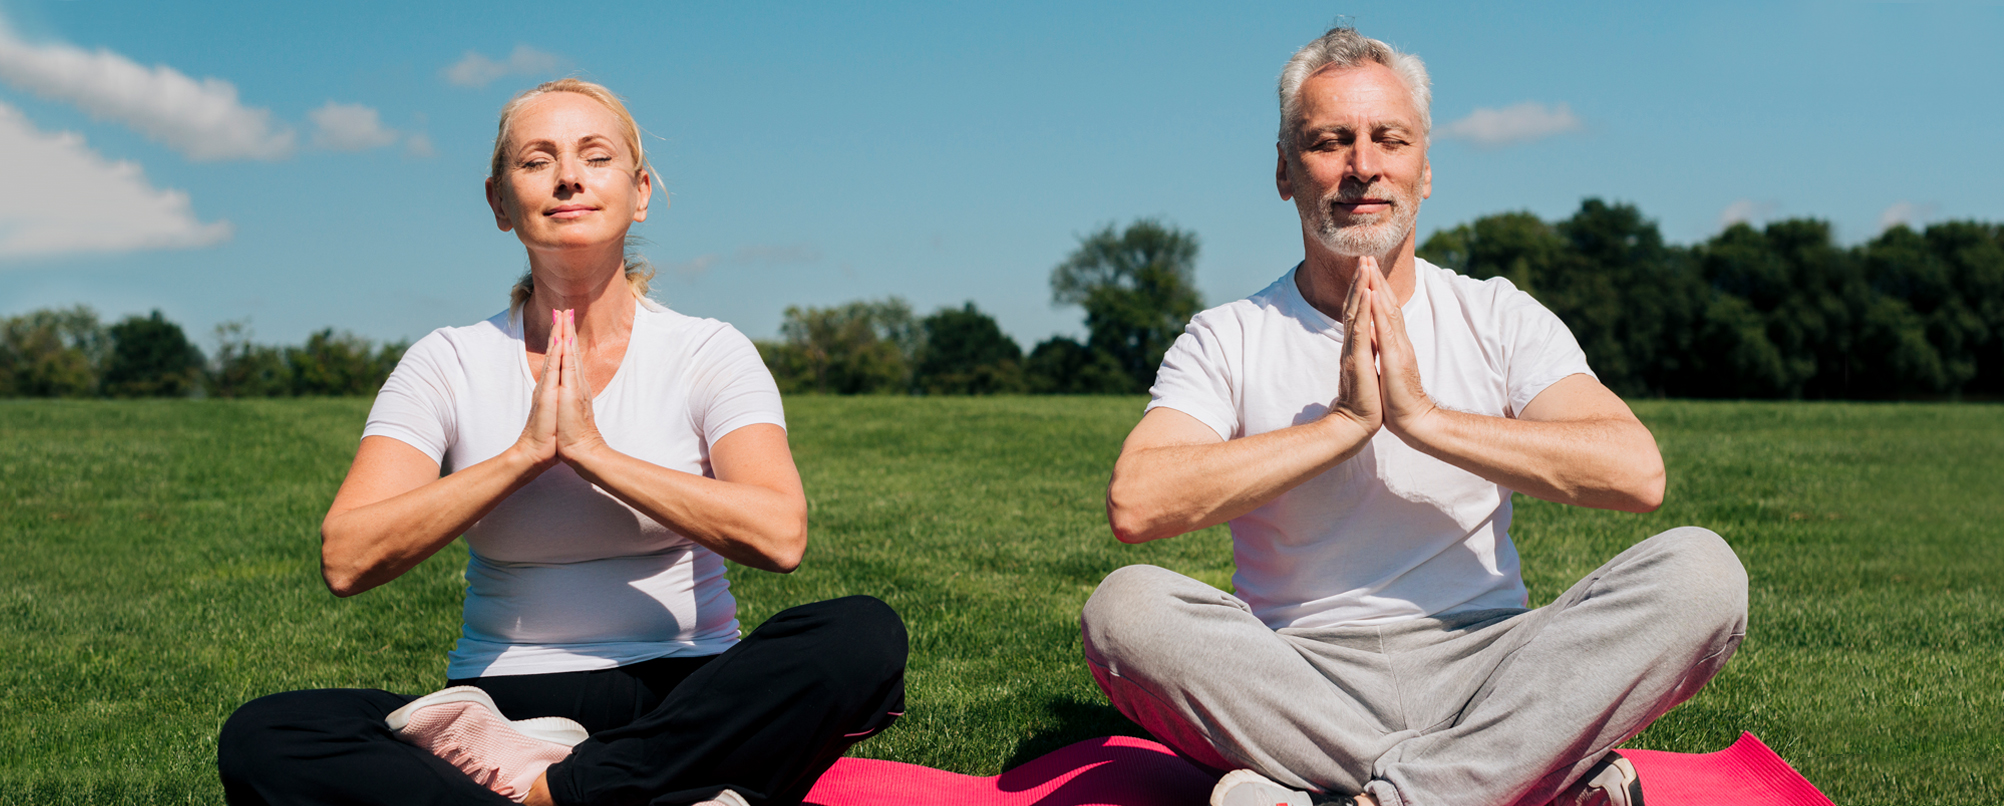 Senior couple practices yoga outdoors in city park.